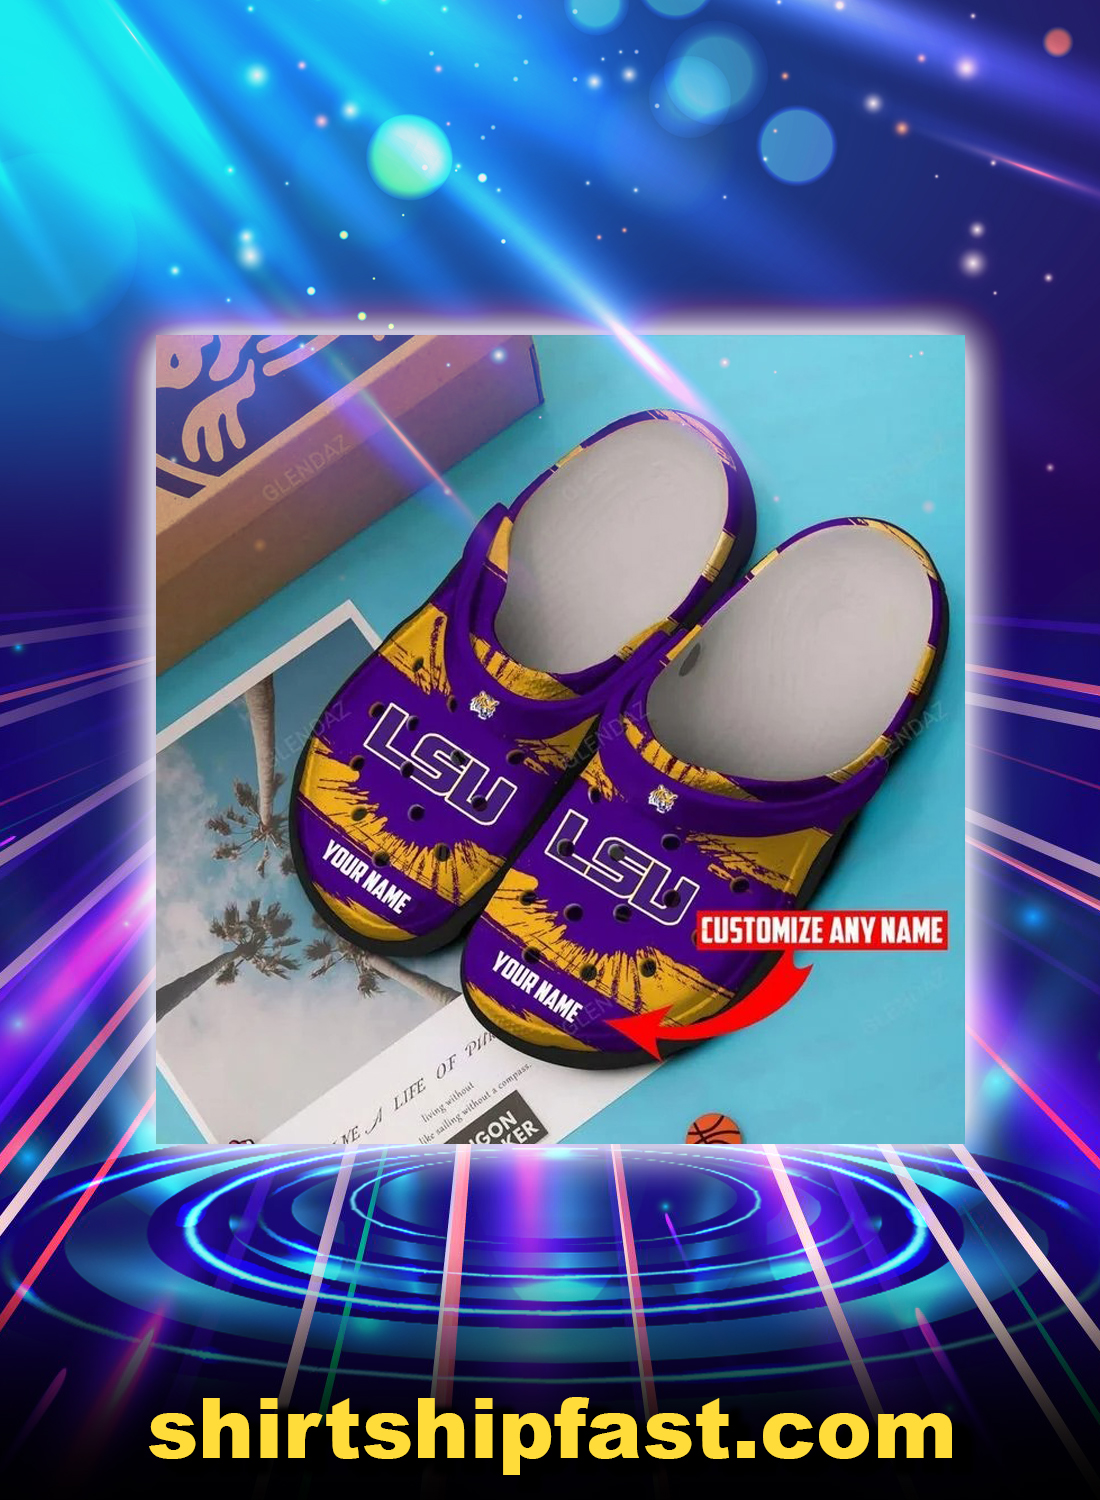 LSU tigers personalized custom name crocband crocs shoes - Picture 1